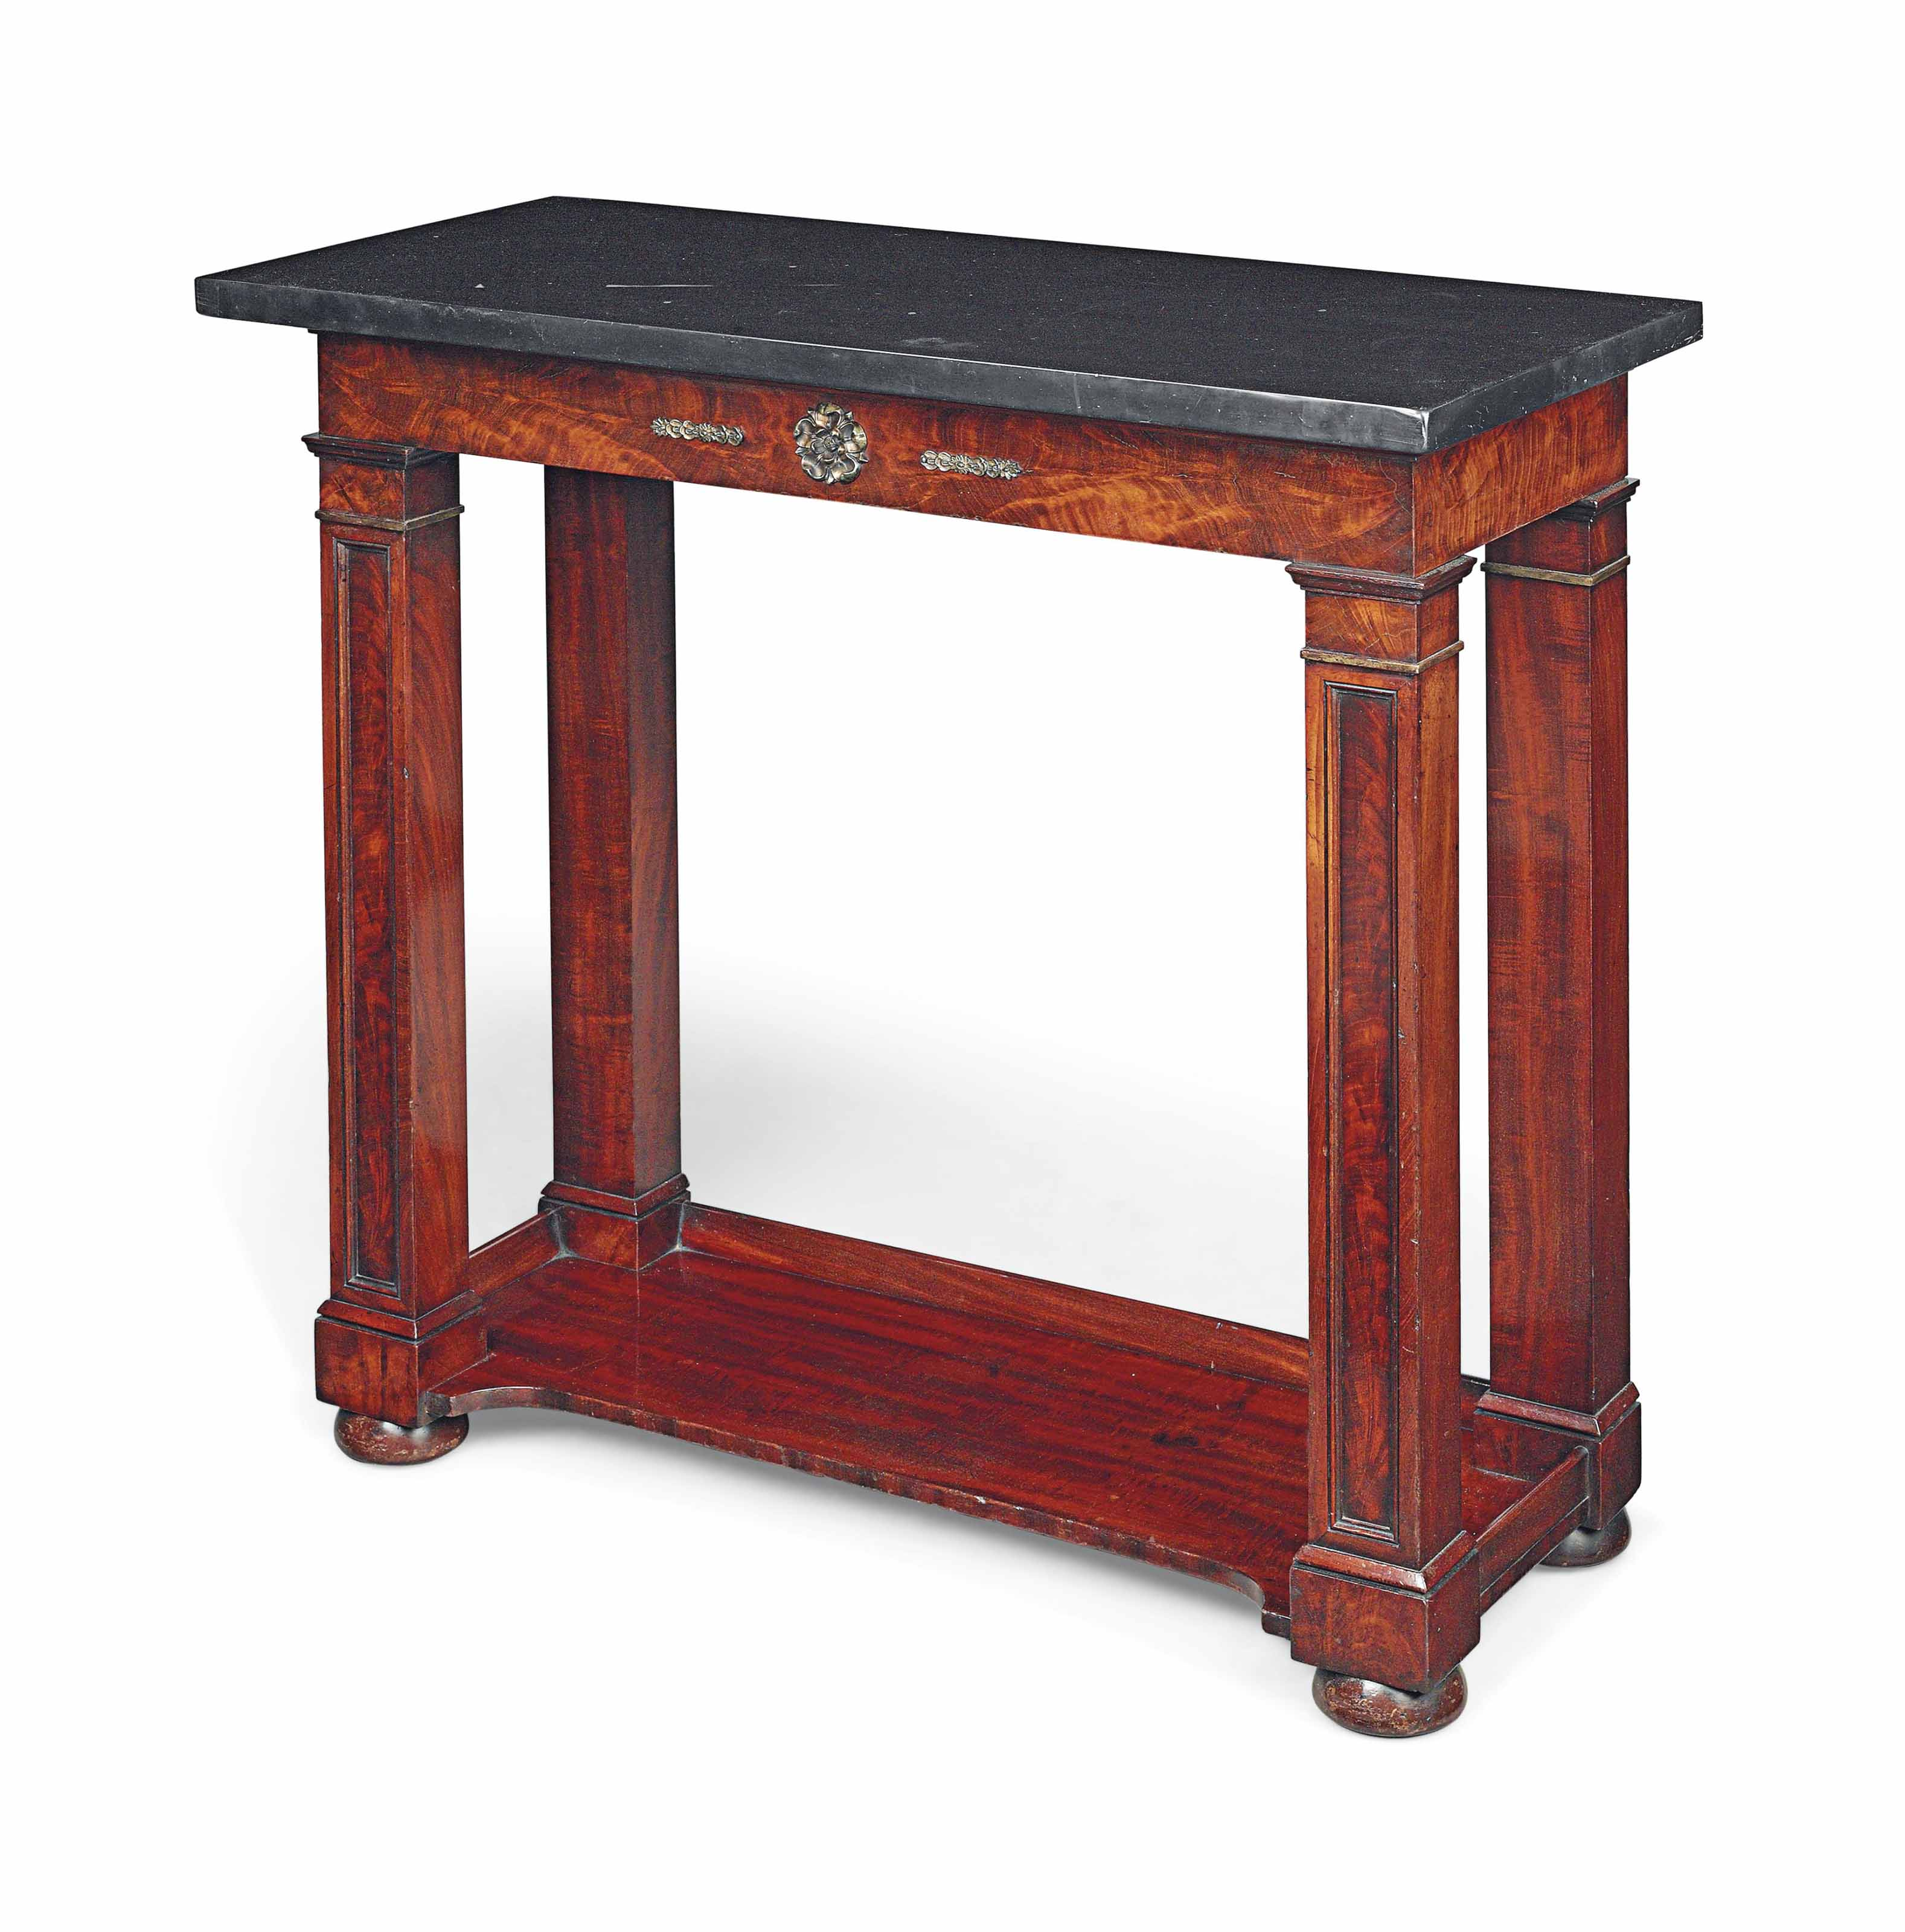 A REGENCY GILT-METAL MOUNTED AND PARCEL-GILT MAHOGANY CONSOLE TABLE